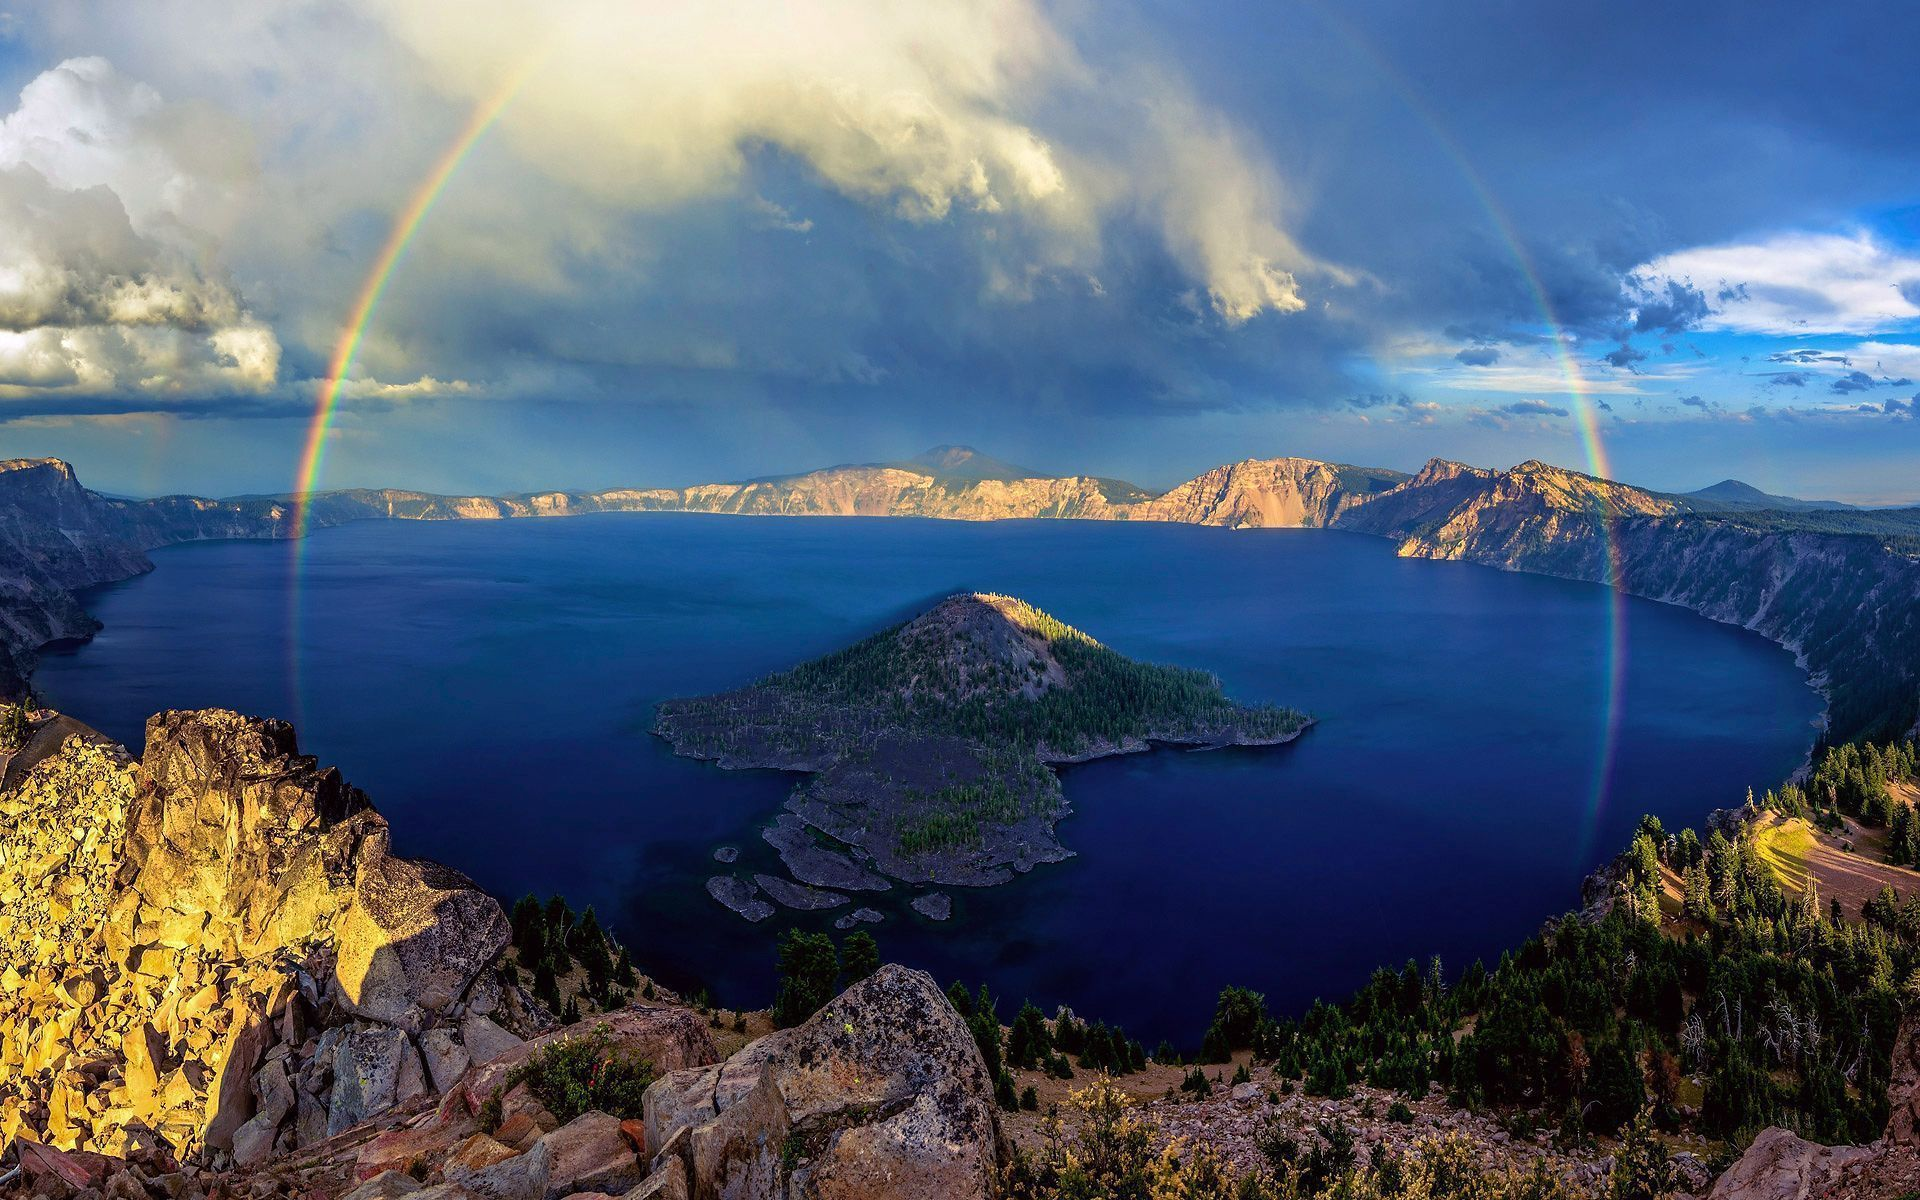 Crater Lake (Oregon) | MIRIADNA.COM #craterlakeoregon Crater Lake (Oregon) | MIRIADNA.COM #craterlakeoregon Crater Lake (Oregon) | MIRIADNA.COM #craterlakeoregon Crater Lake (Oregon) | MIRIADNA.COM #craterlakeoregon Crater Lake (Oregon) | MIRIADNA.COM #craterlakeoregon Crater Lake (Oregon) | MIRIADNA.COM #craterlakeoregon Crater Lake (Oregon) | MIRIADNA.COM #craterlakeoregon Crater Lake (Oregon) | MIRIADNA.COM #craterlakeoregon Crater Lake (Oregon) | MIRIADNA.COM #craterlakeoregon Crater Lake (O #craterlakeoregon